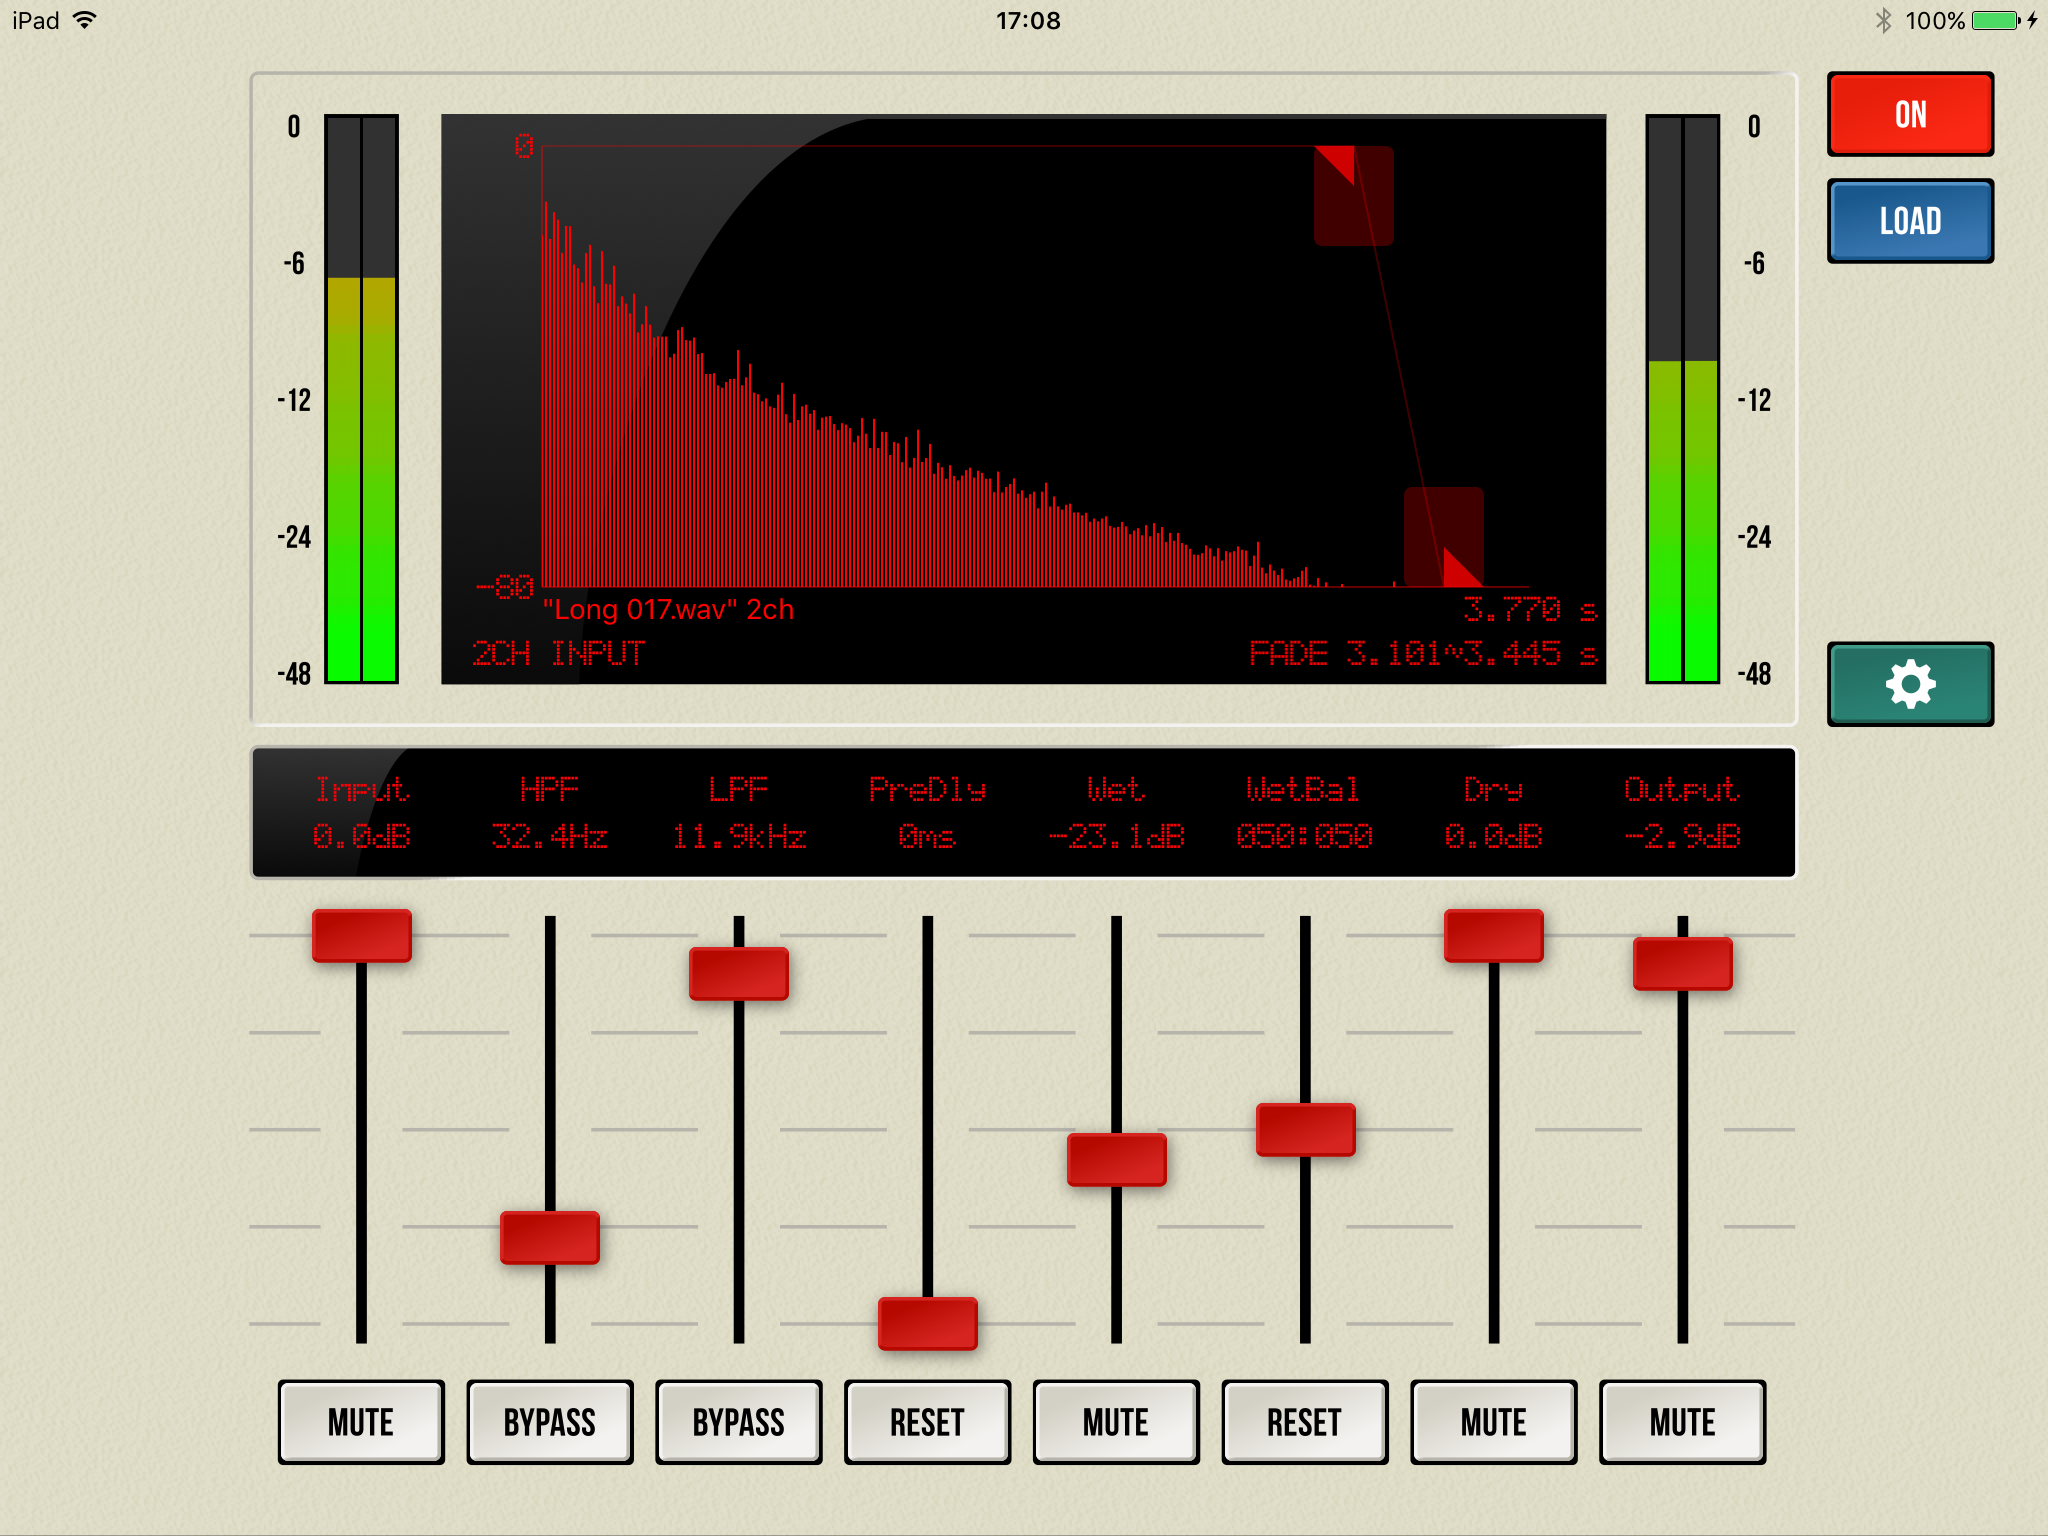 ART Teknika releases iConvolver 1.0 for iOS - Impulse Response Reverb Image